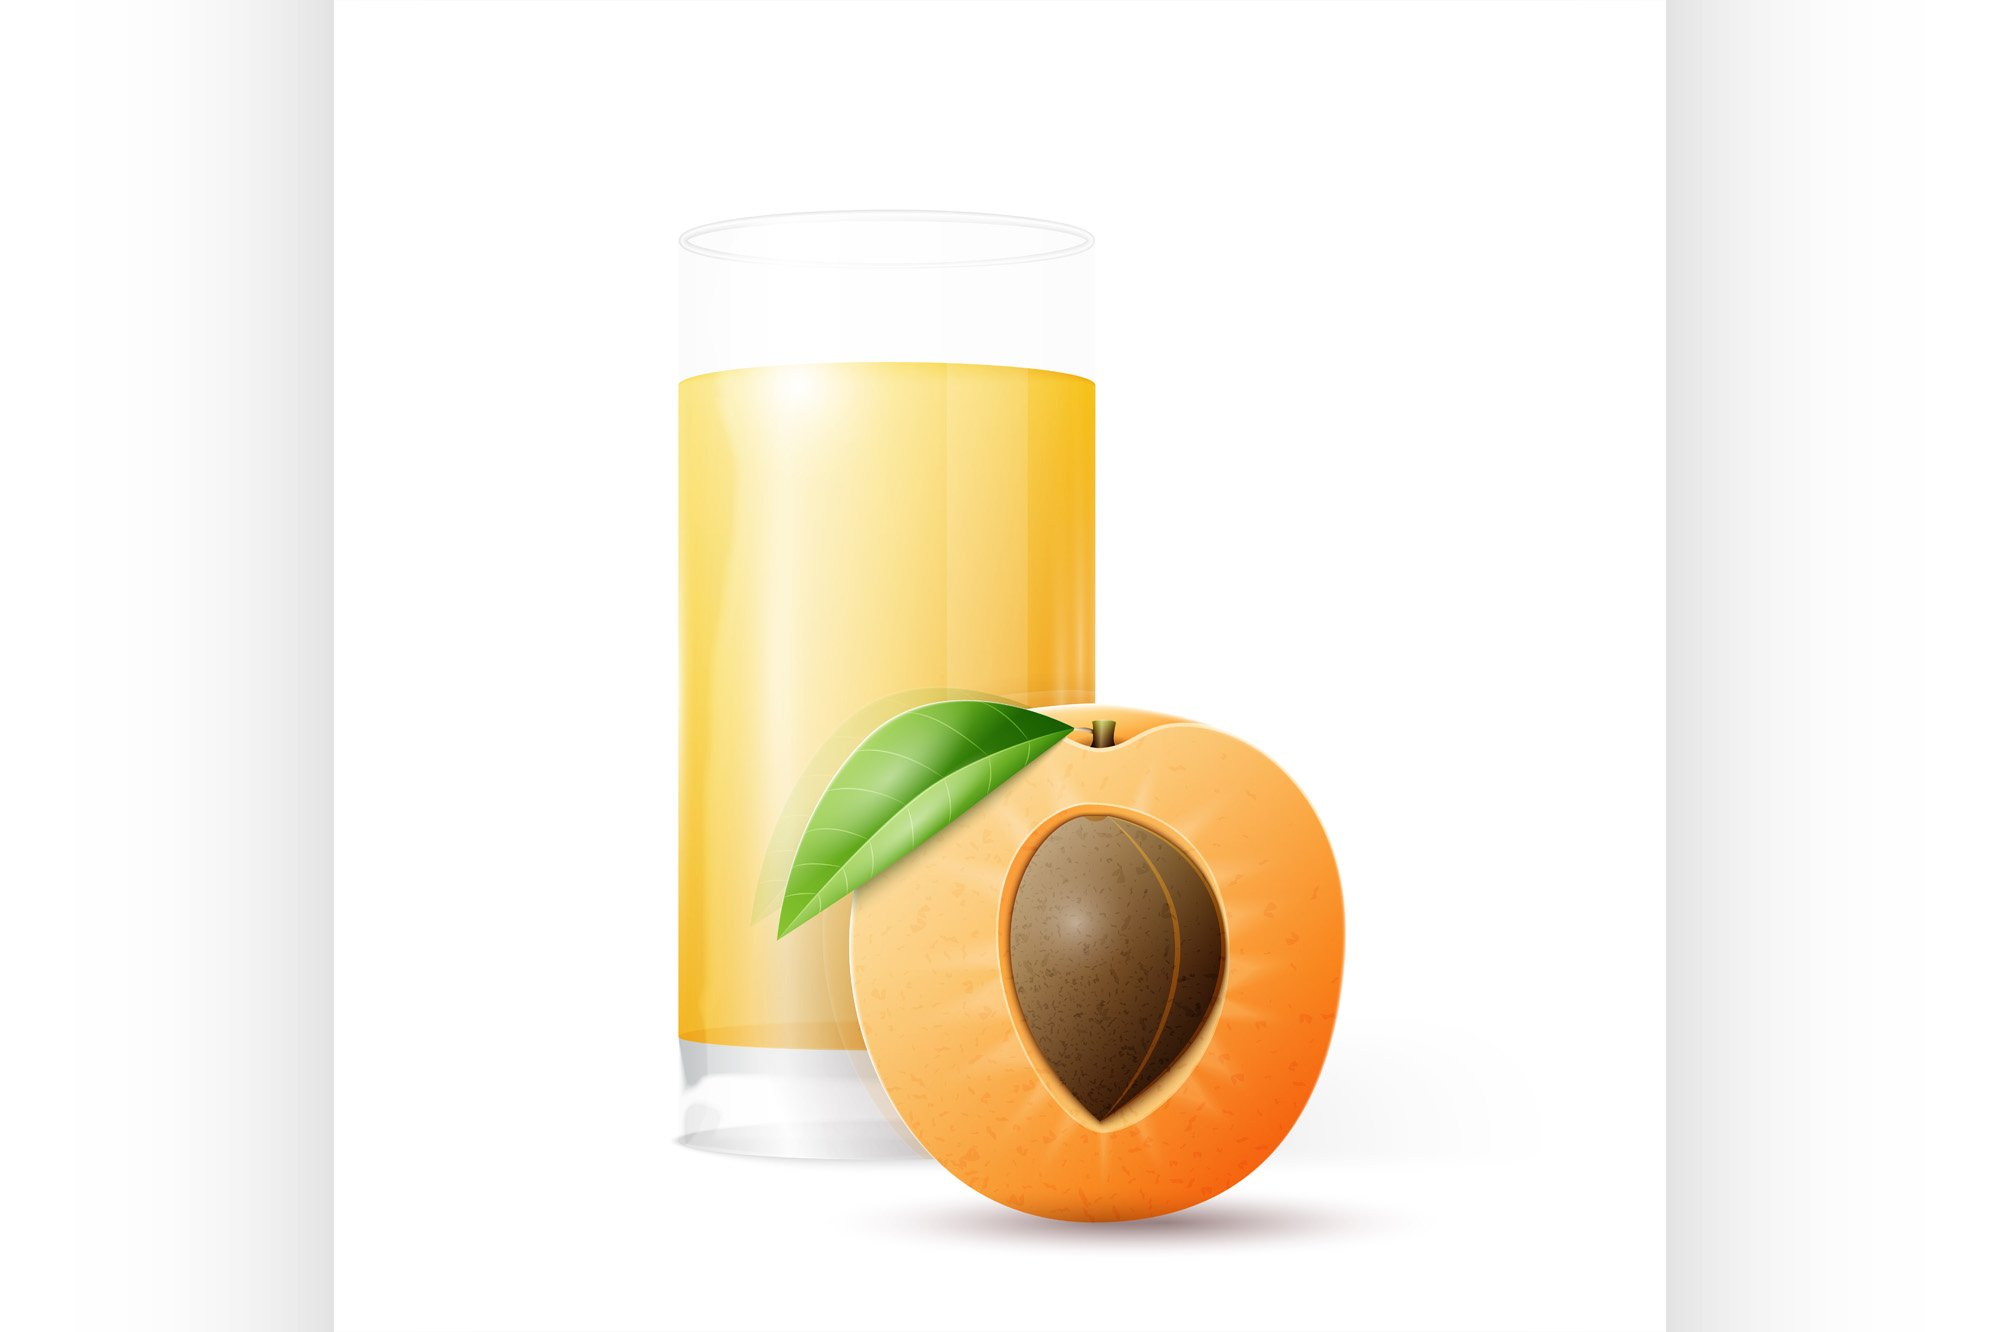 Half apricot and glass of juice example image 1